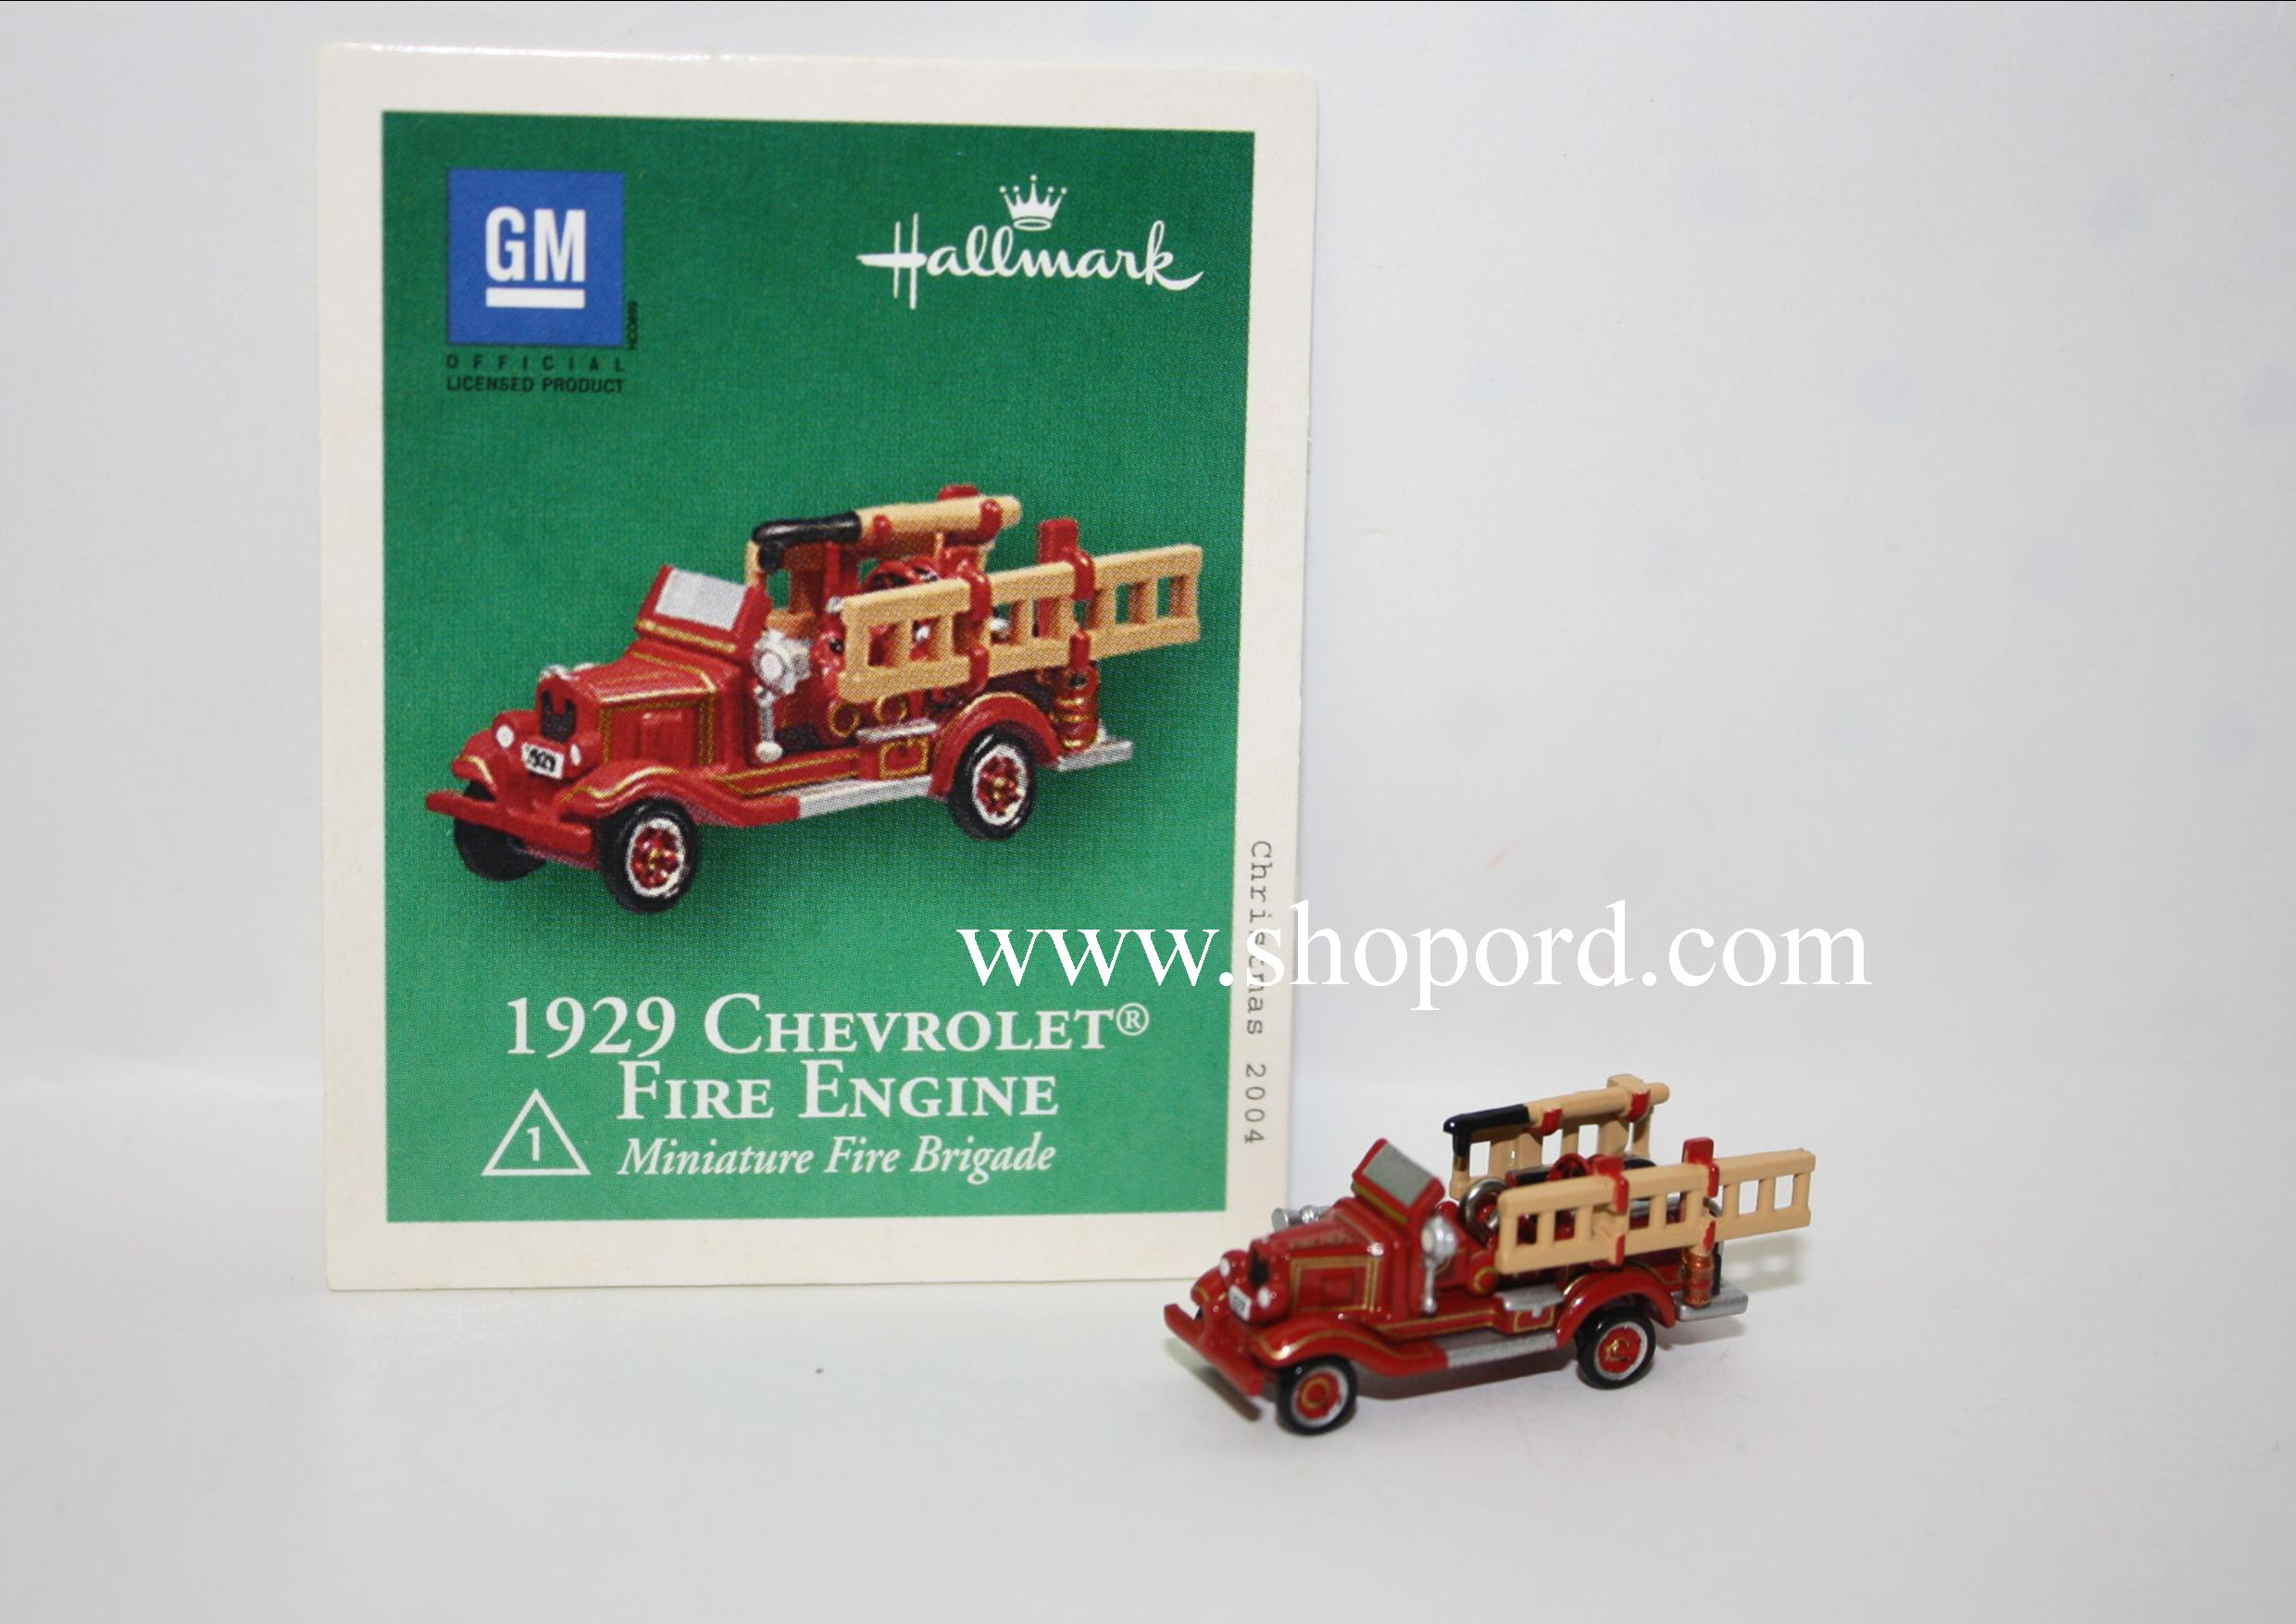 Hallmark 1929 Chevrolet Fire Engine 2004 Miniature Ornament 1st in the Fire Brigade Series QXM5164